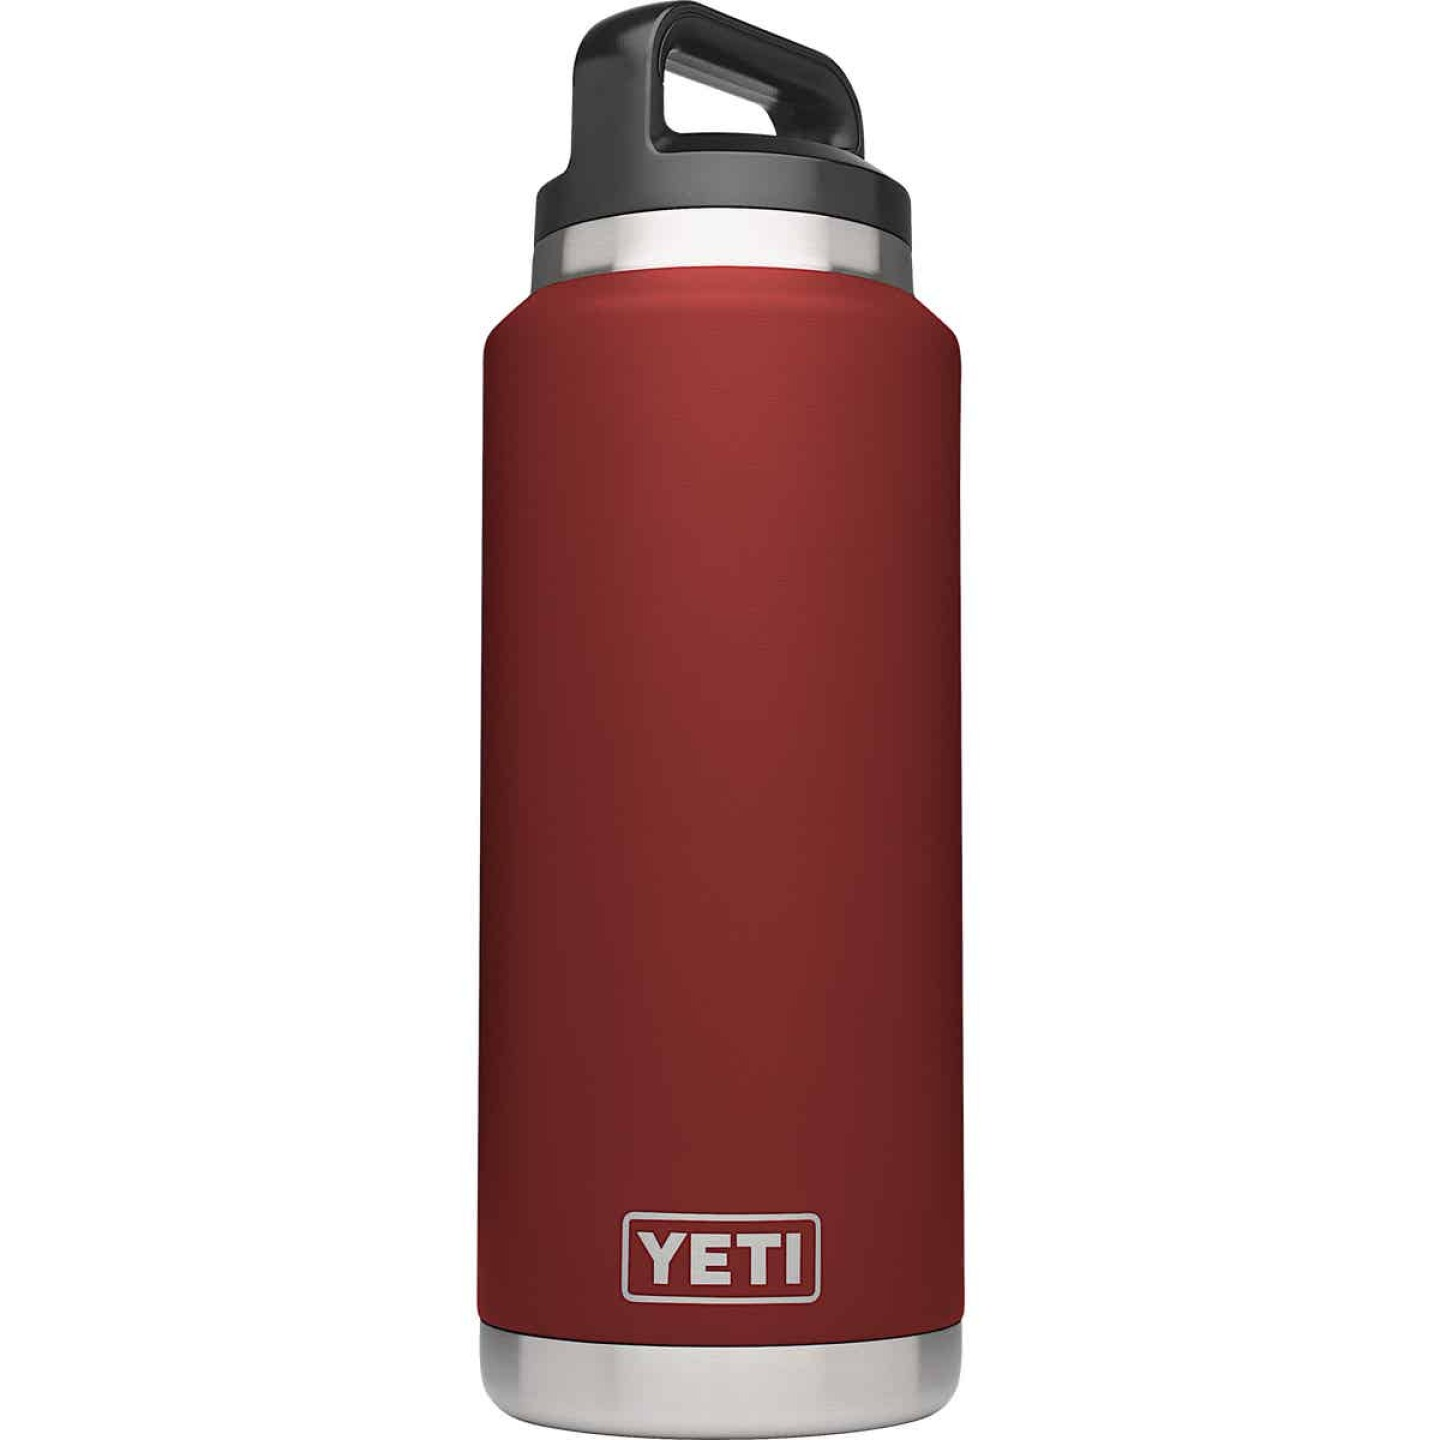 Yeti Rambler 36 Oz. Brick Red Stainless Steel Insulated Vacuum Bottle Image 1